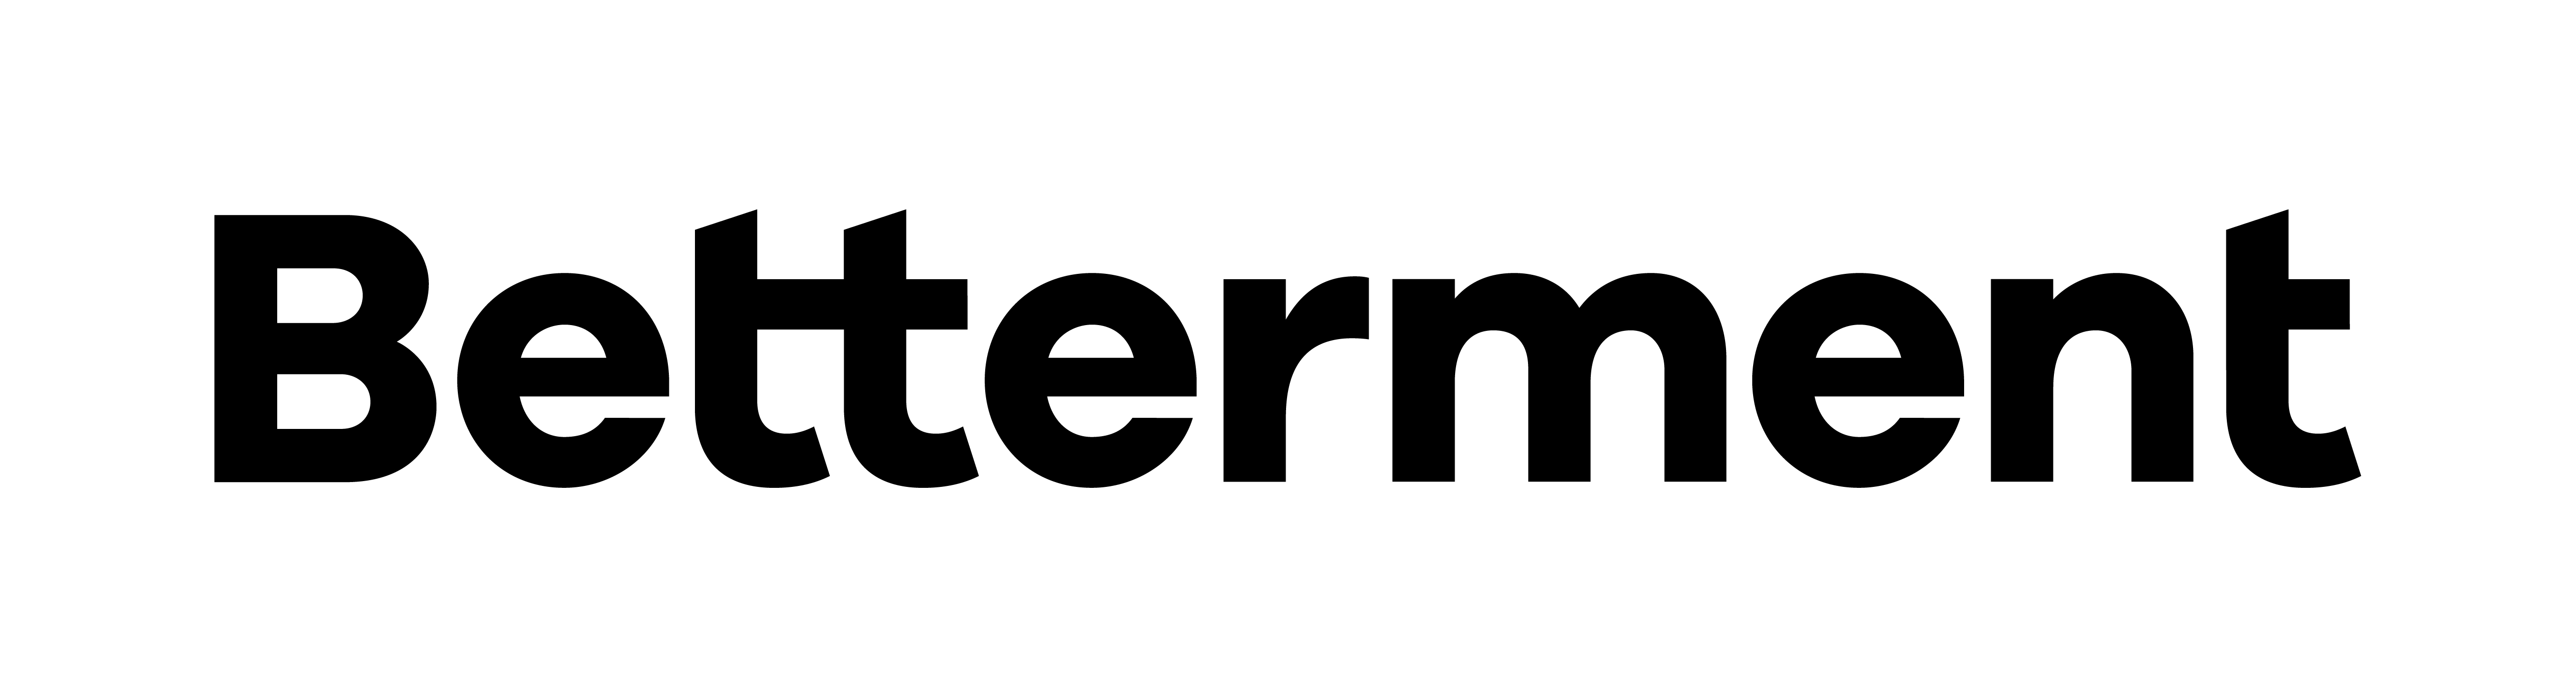 Image result for betterment logo